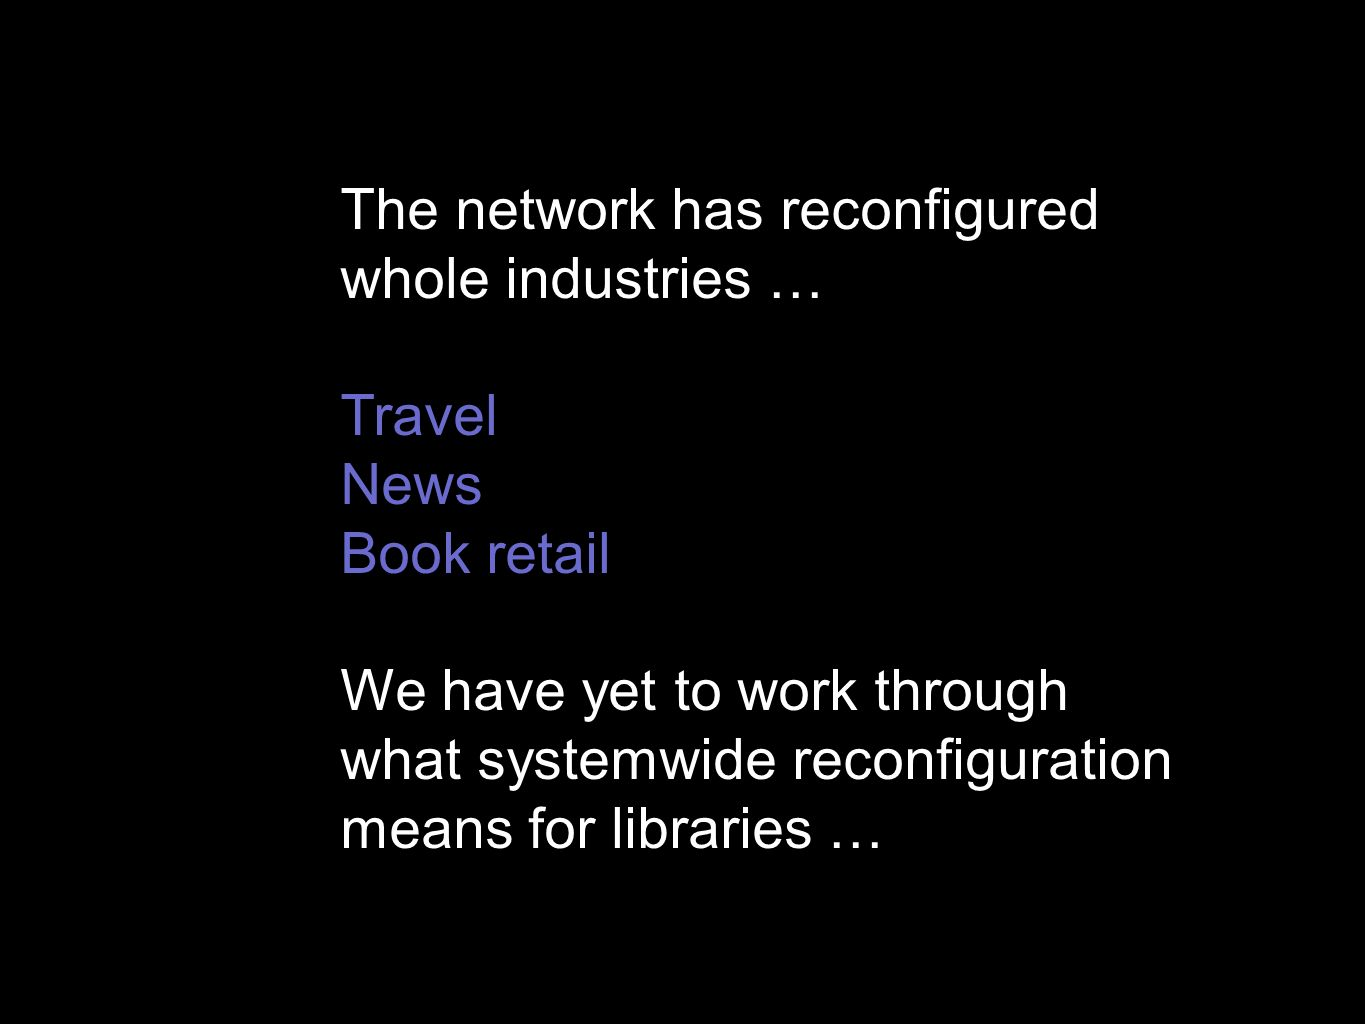 The network has reconfigured whole industries … Travel News Book retail We have yet to work through what systemwide reconfiguration means for libraries …